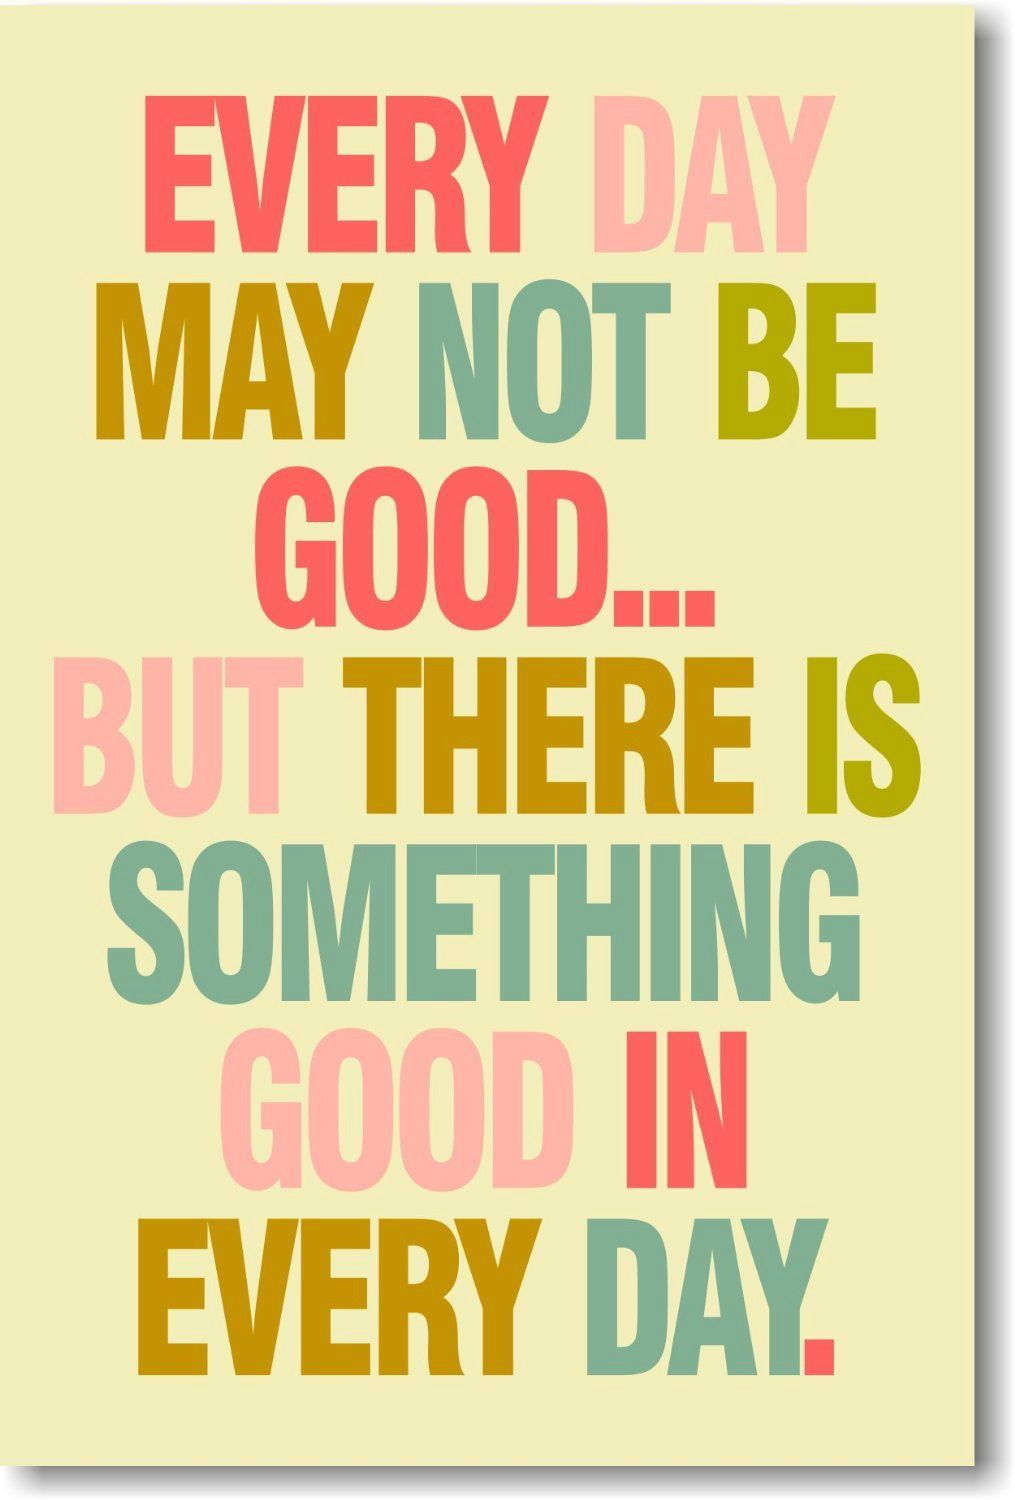 ad inspirational quote every day may not be good but